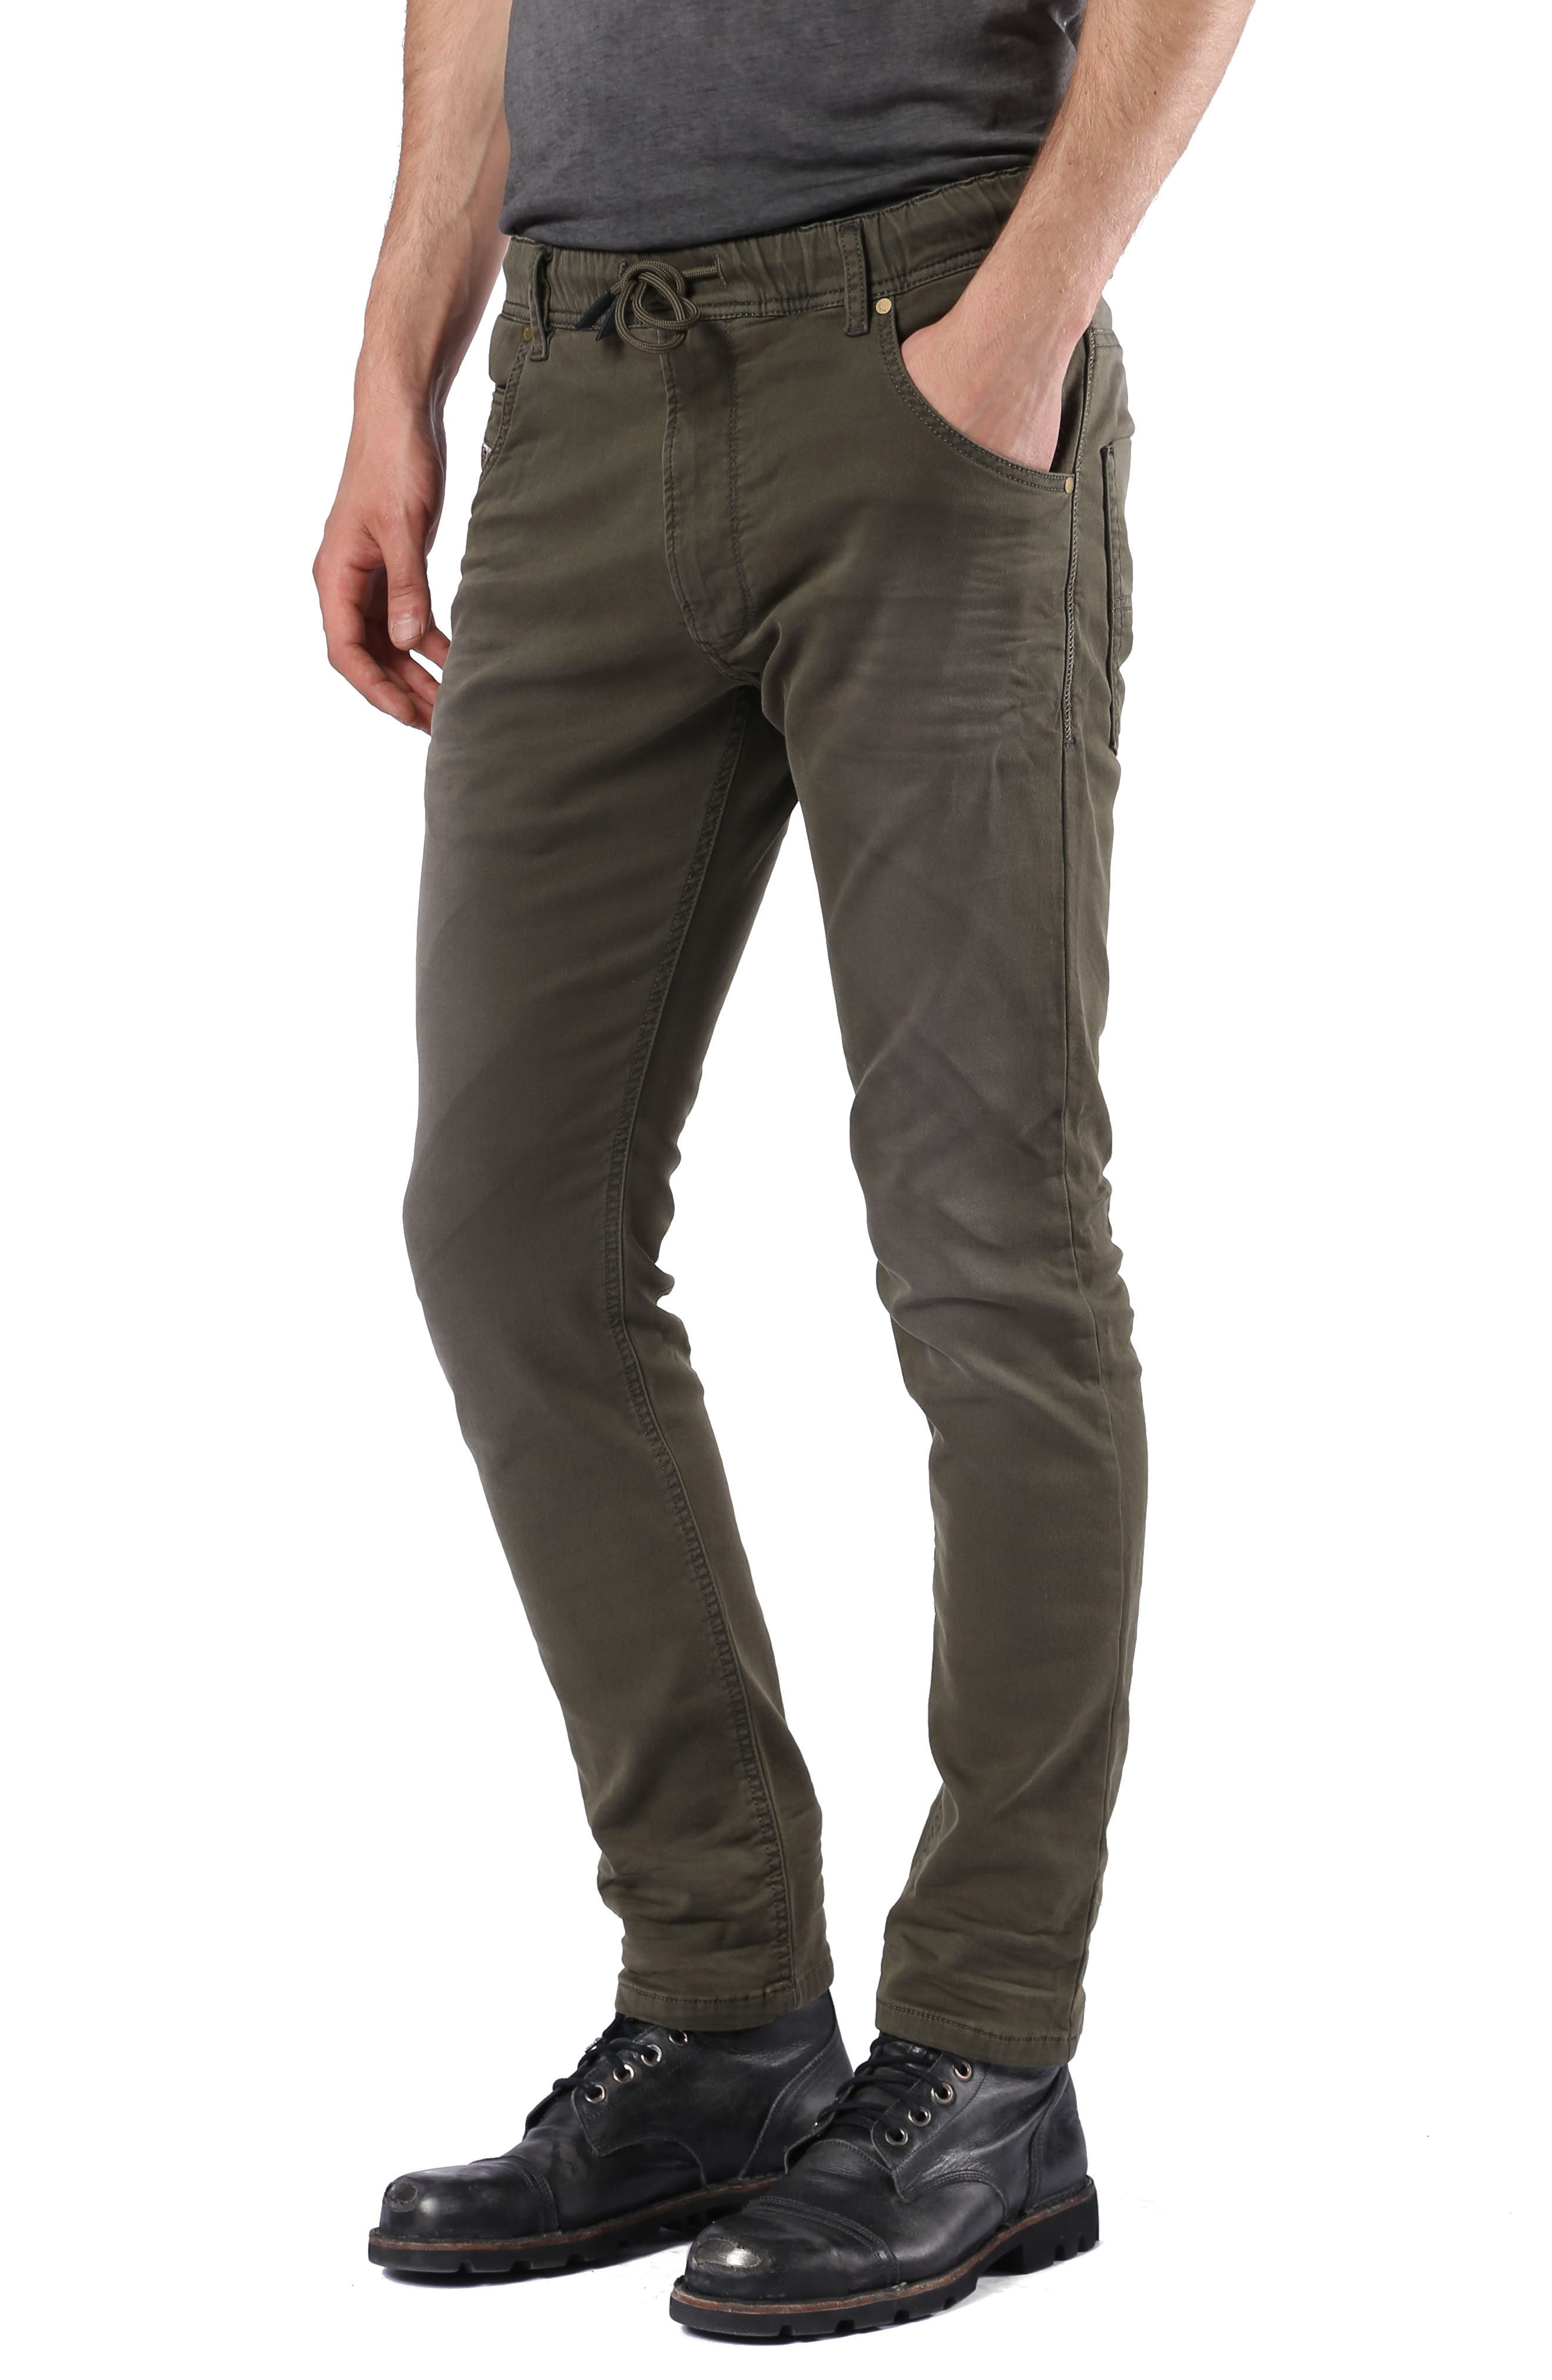 Krooley Slouchy Skinny Fit Jeans,                             Alternate thumbnail 4, color,                             0670M